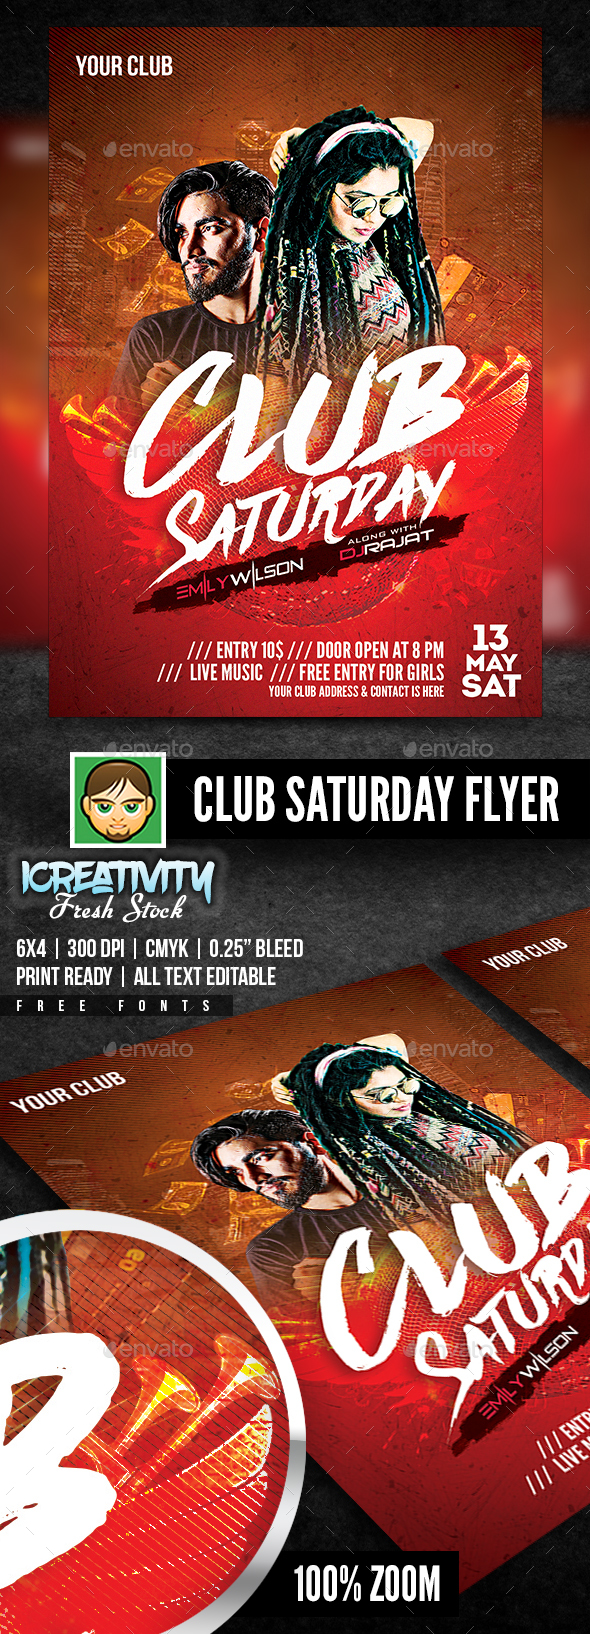 Club Saturday Flyer - Flyers Print Templates